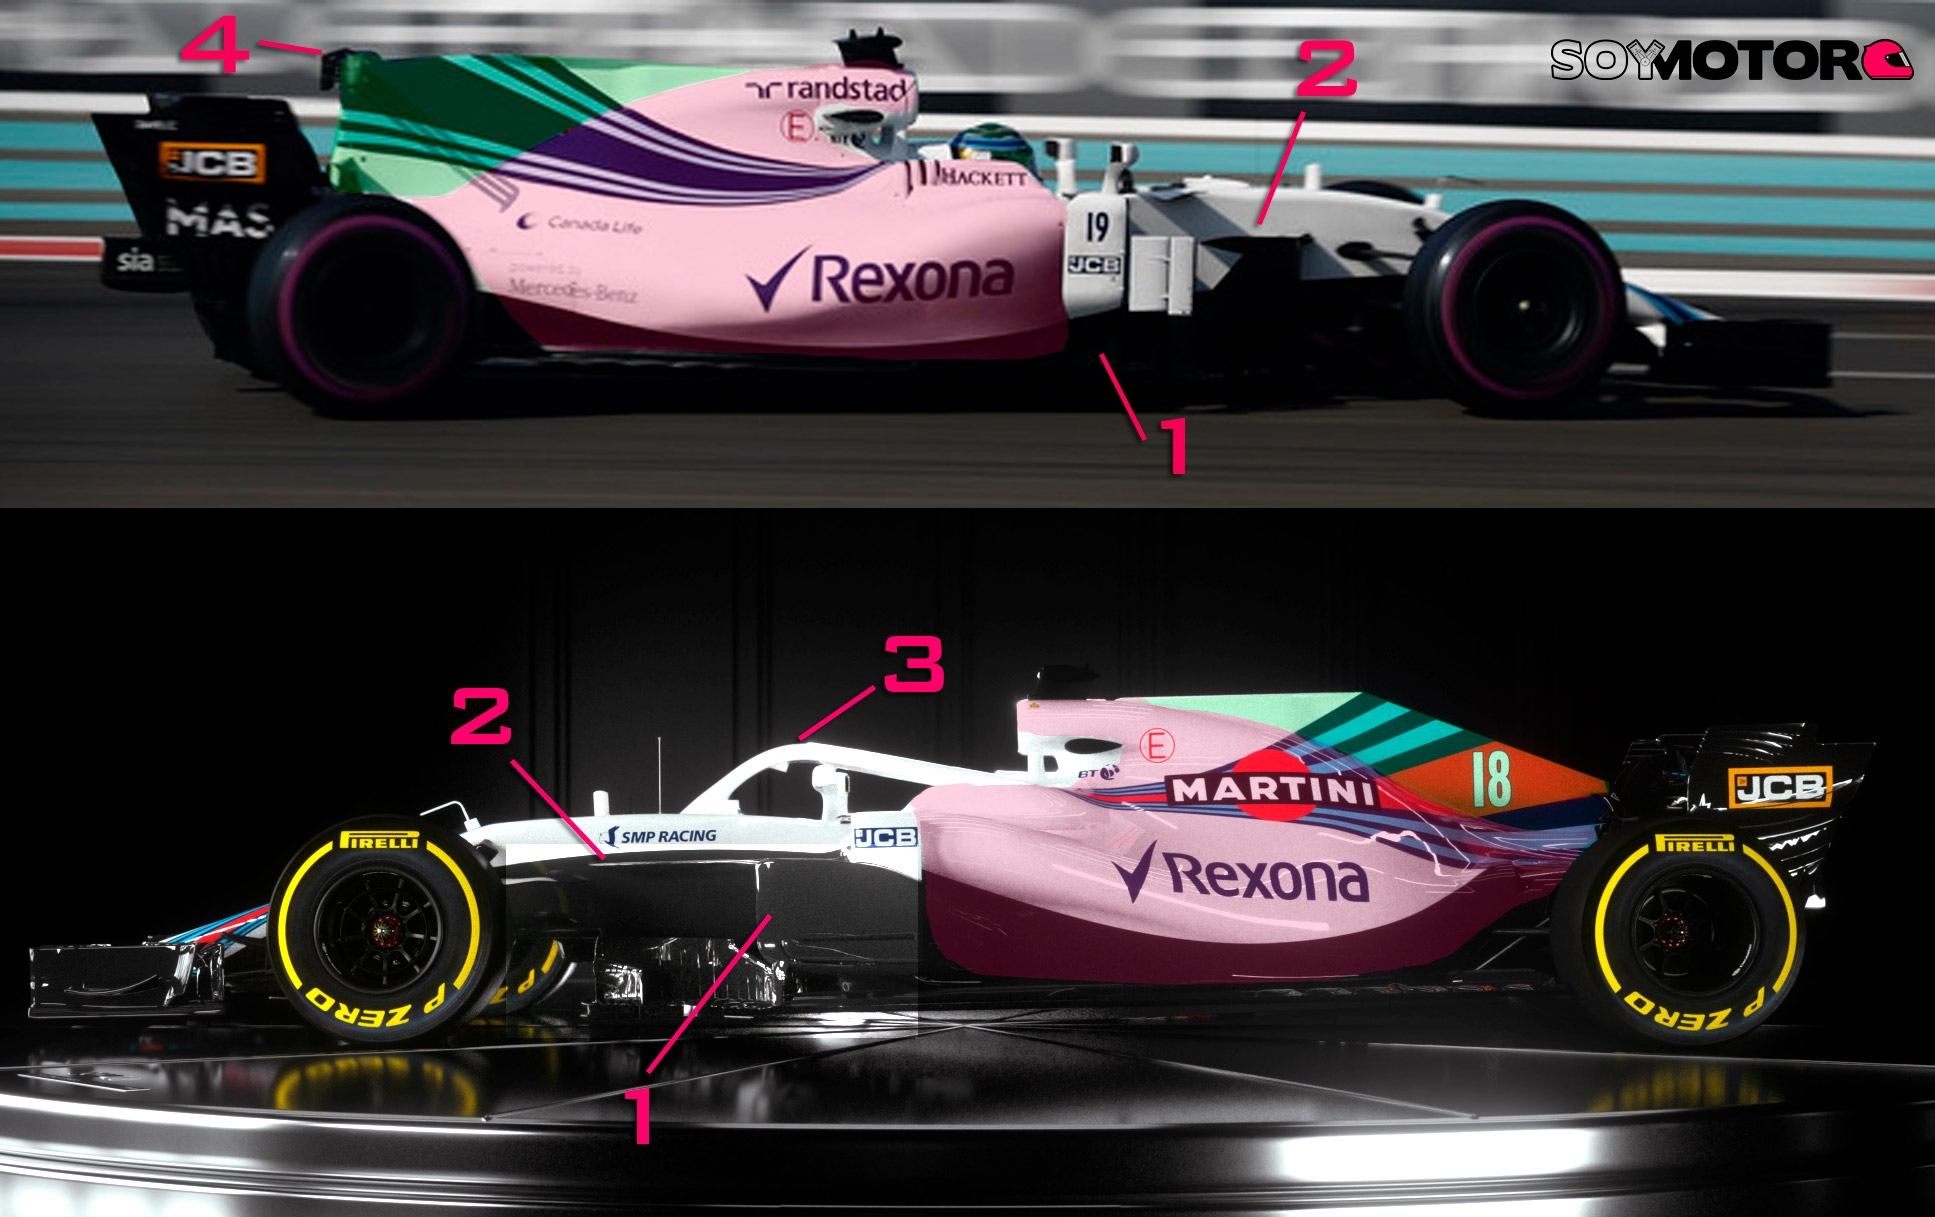 williams-vista-lateral.jpg